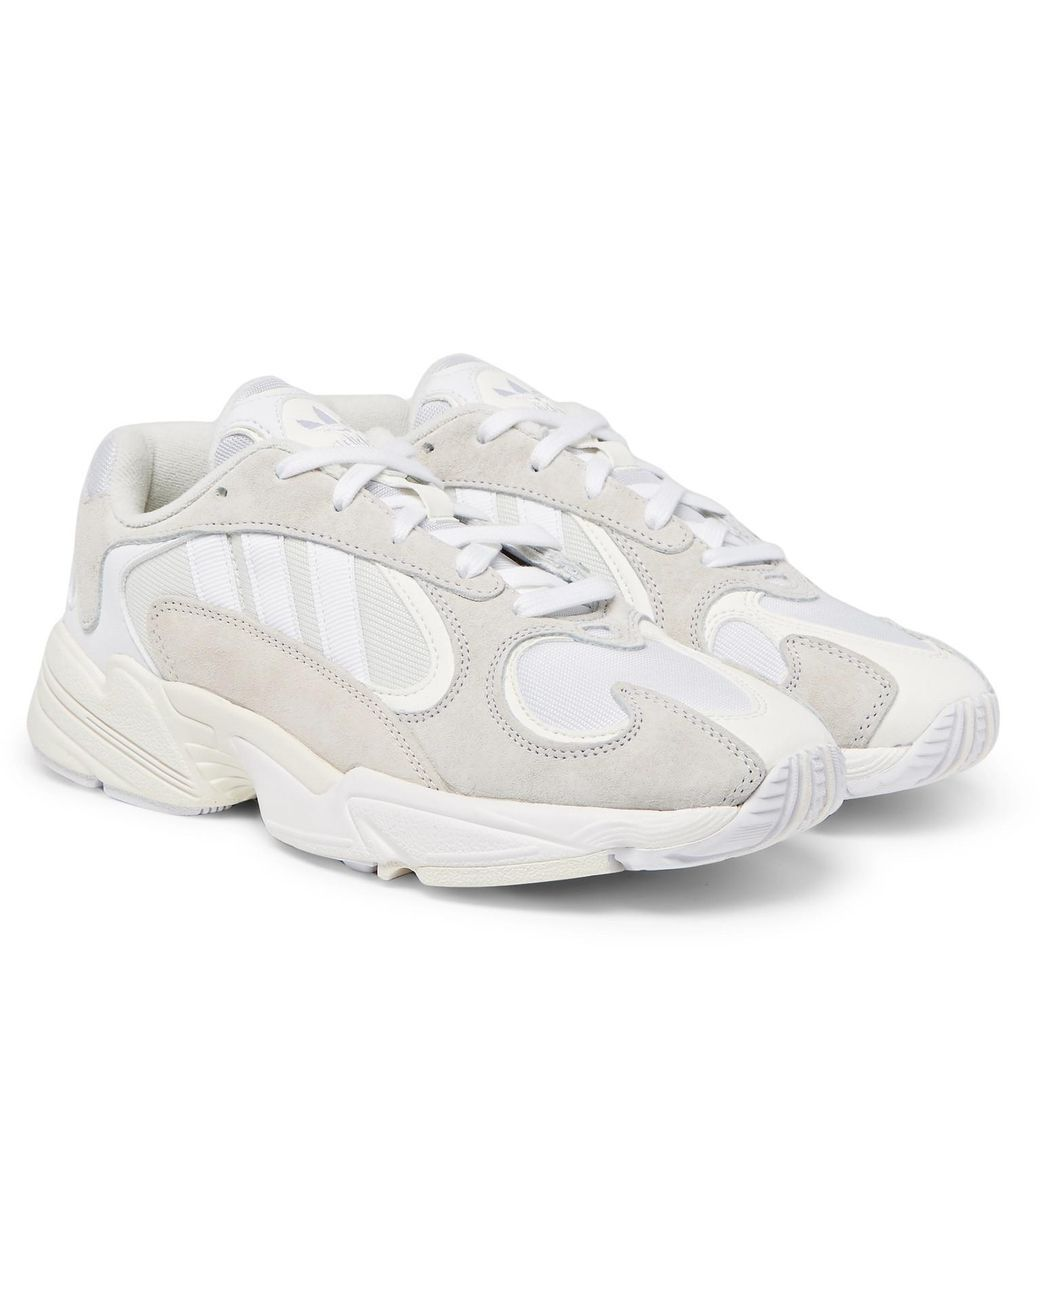 Adidas Originals - White Yung 1 Suede And Mesh Sneakers for Men - Lyst cc058b3f5